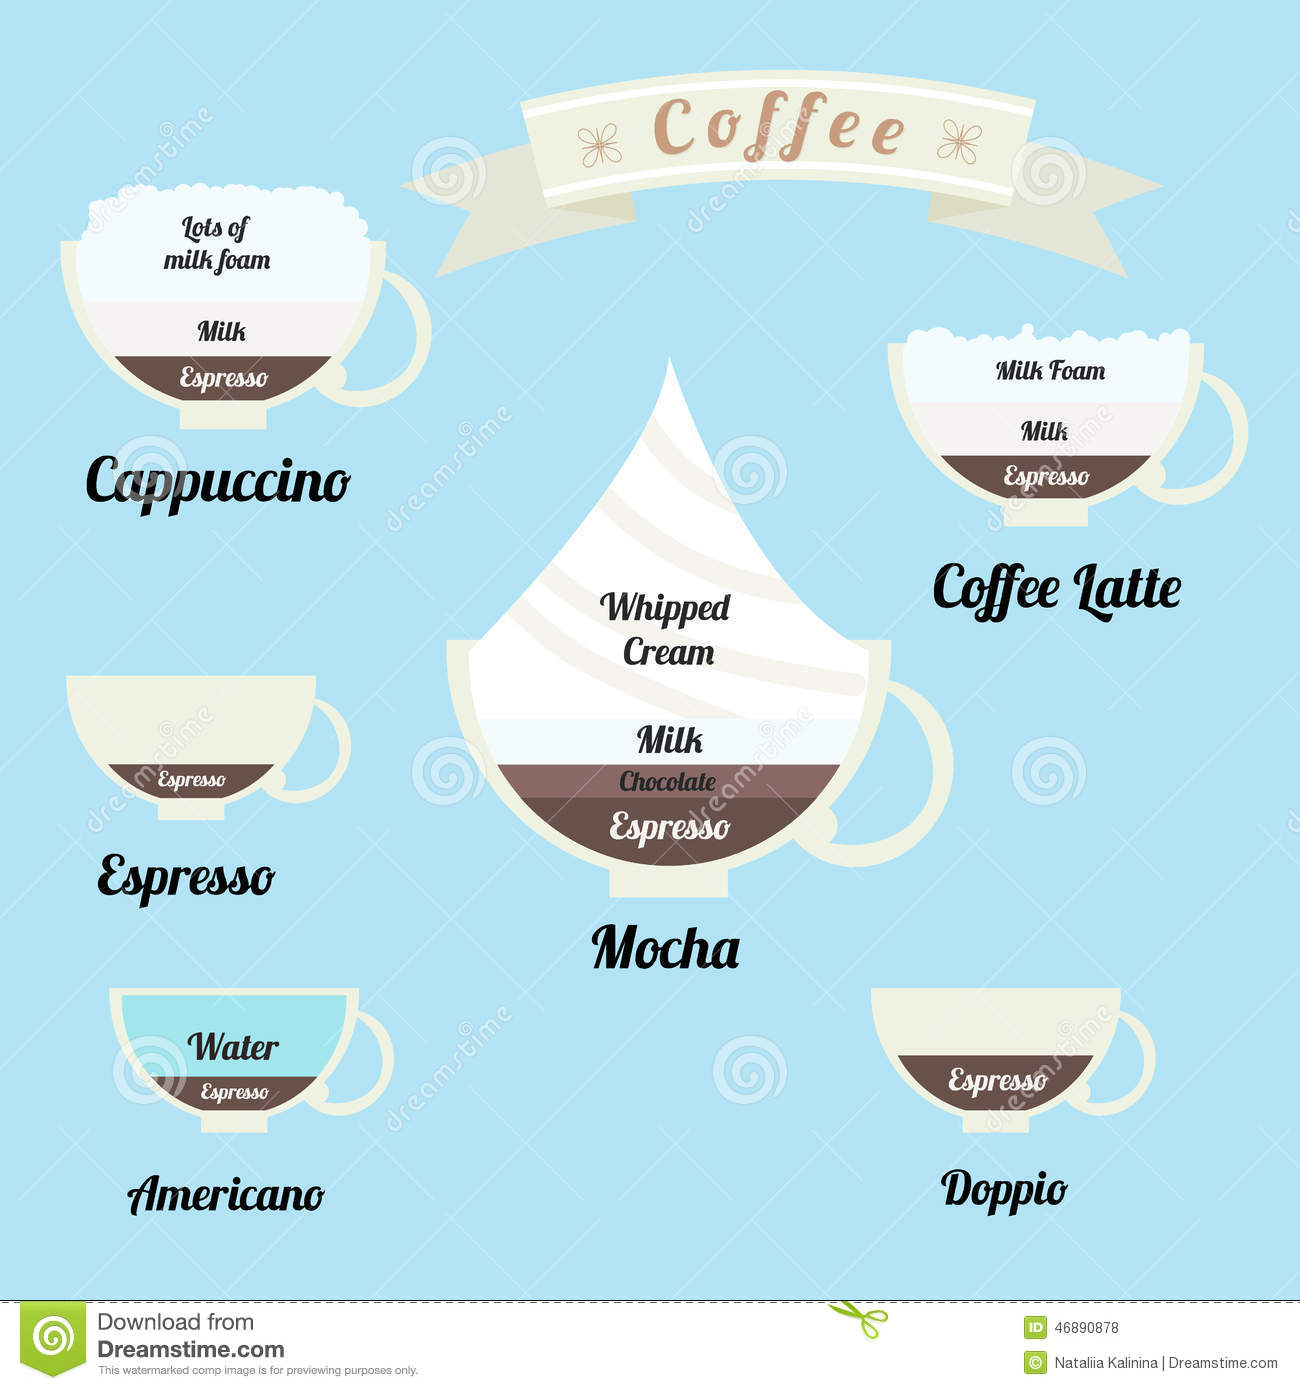 Business Plan For Coffee House Images